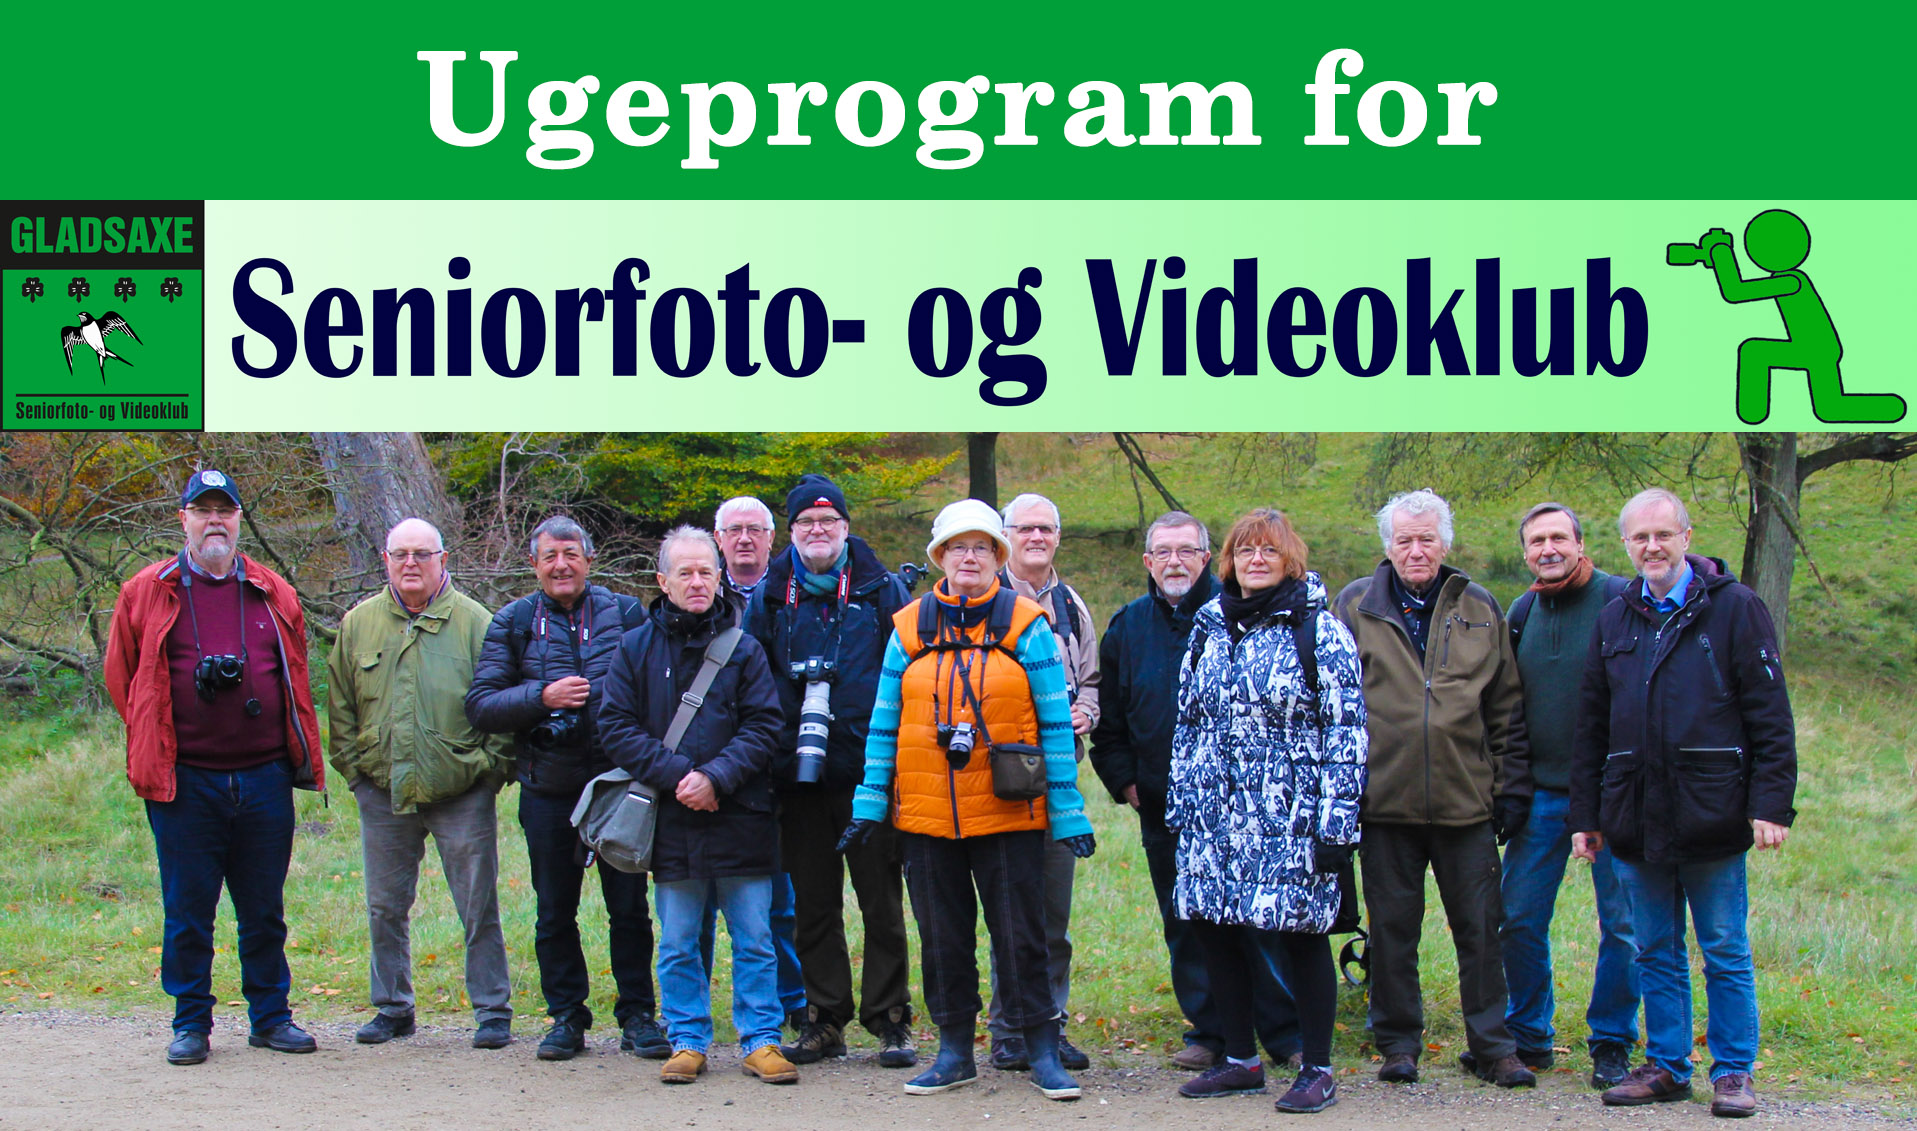 Ugeprogram for Seniorfoto- og Videoklub